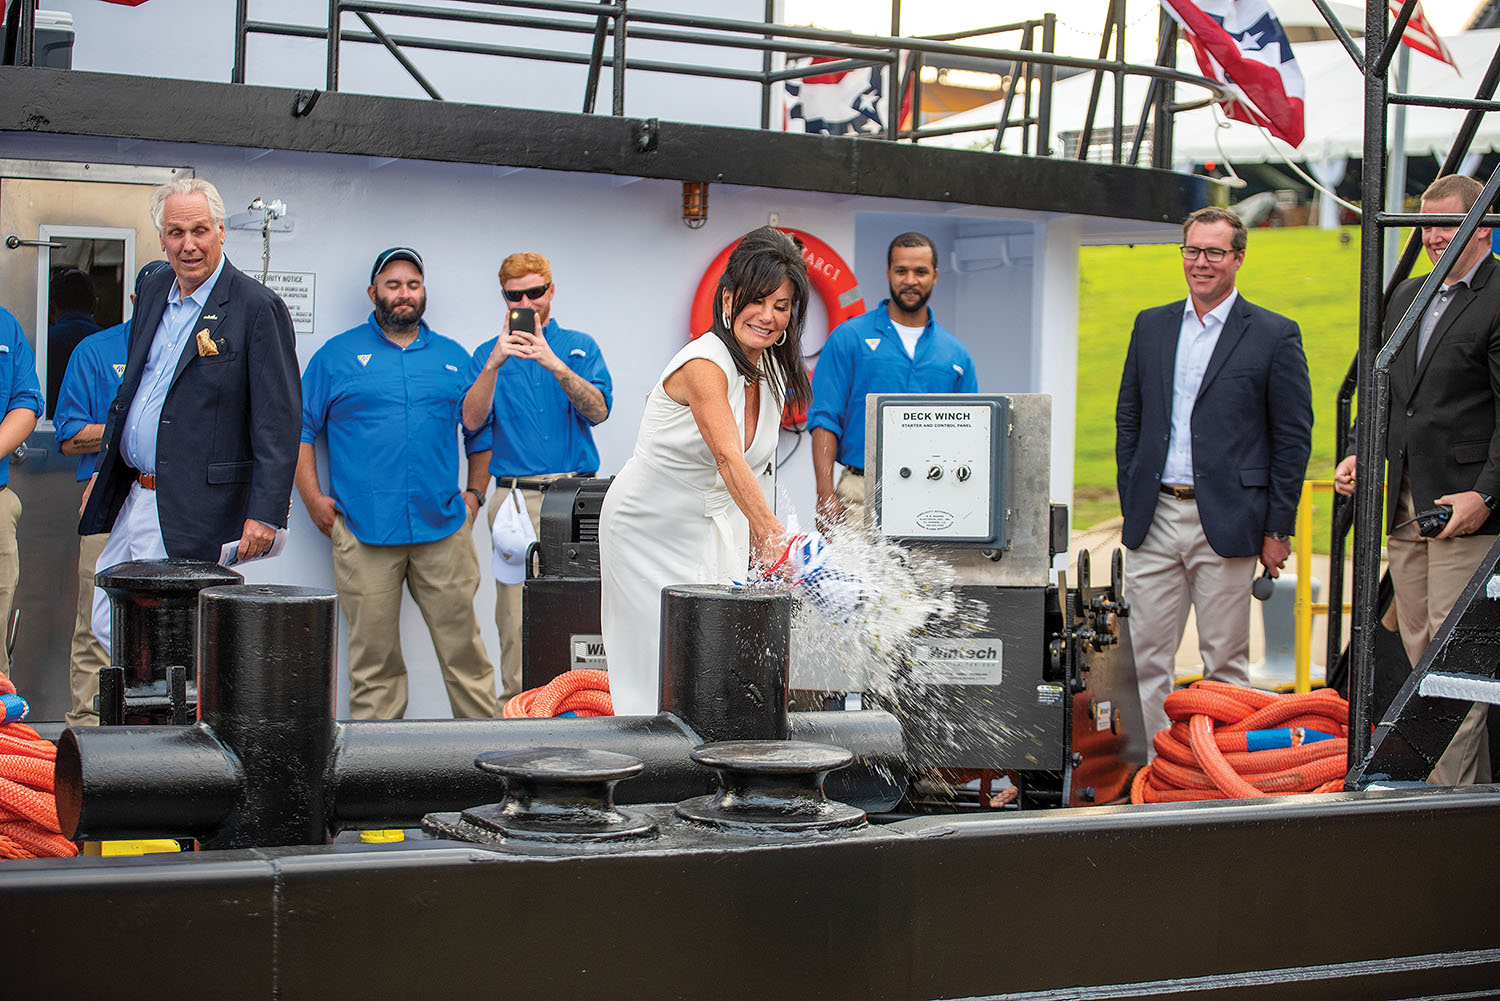 Marci Gale Casselhoff christens her namesake vessel with a bottle of champagne. (Photo by Fisher Fotos)